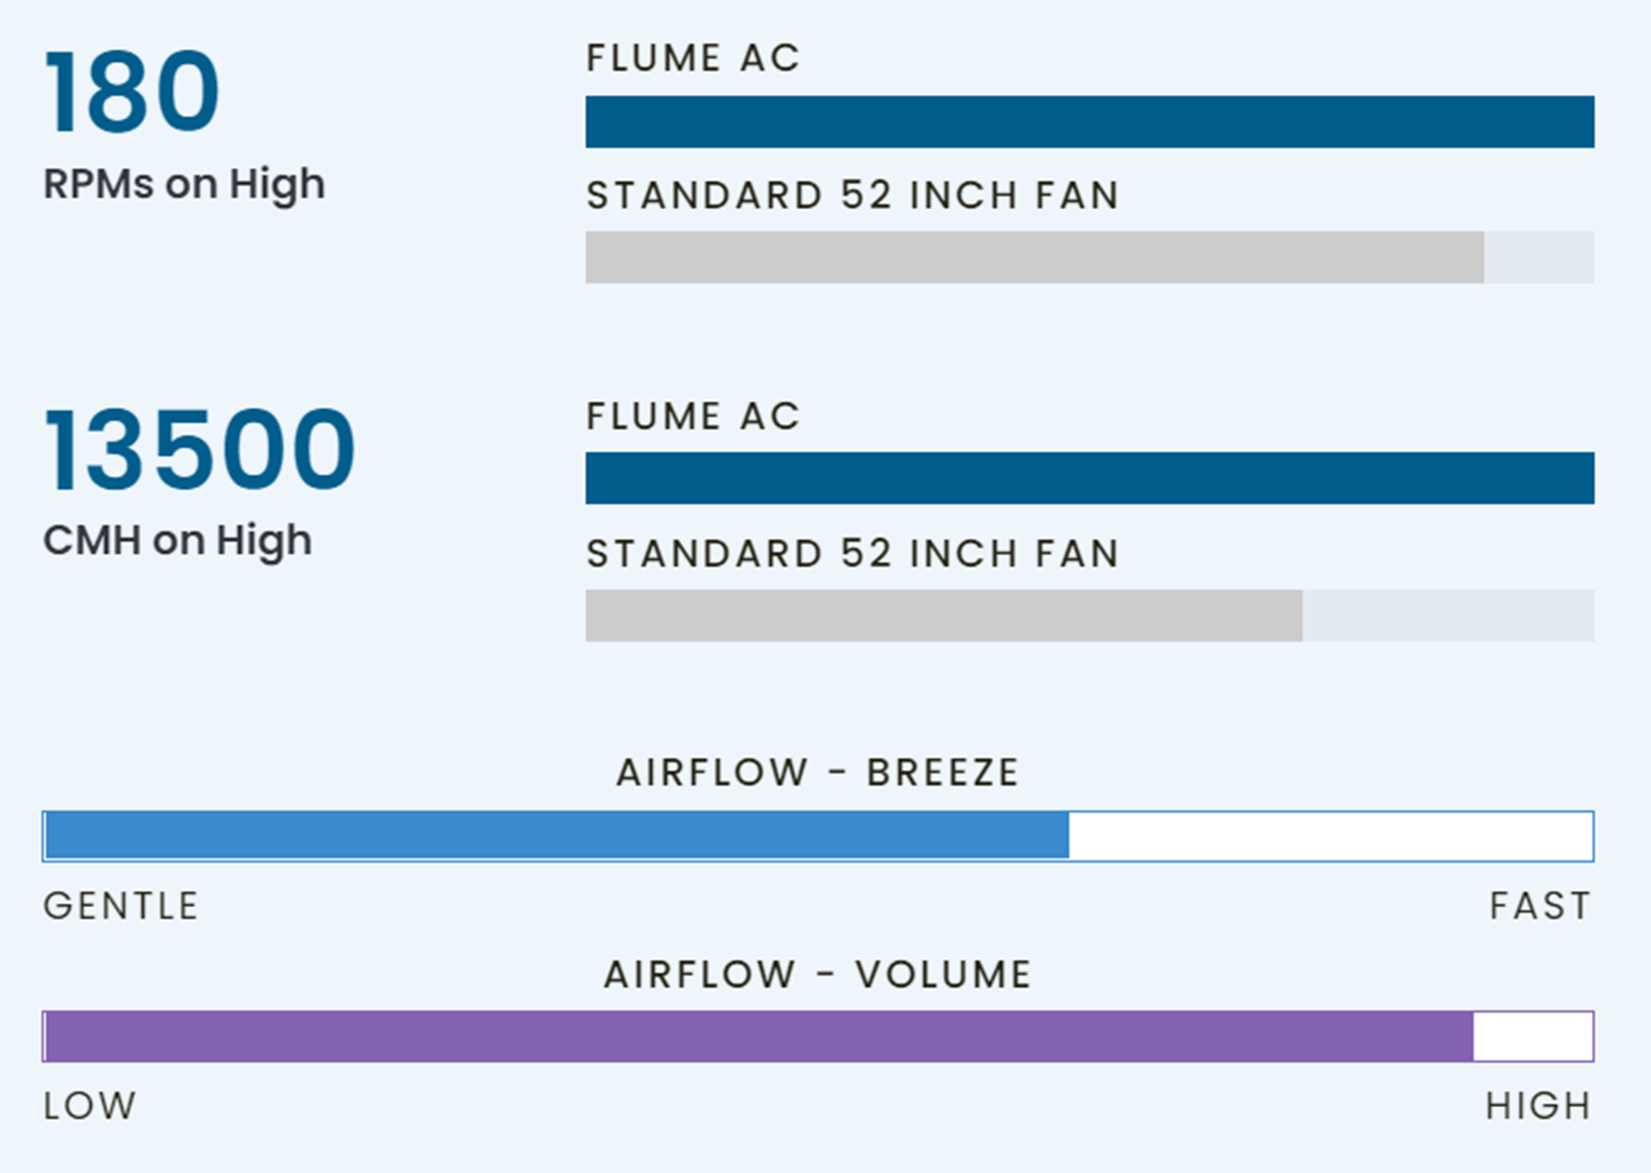 flume-60-inches-152cm-ceiling-fan.png